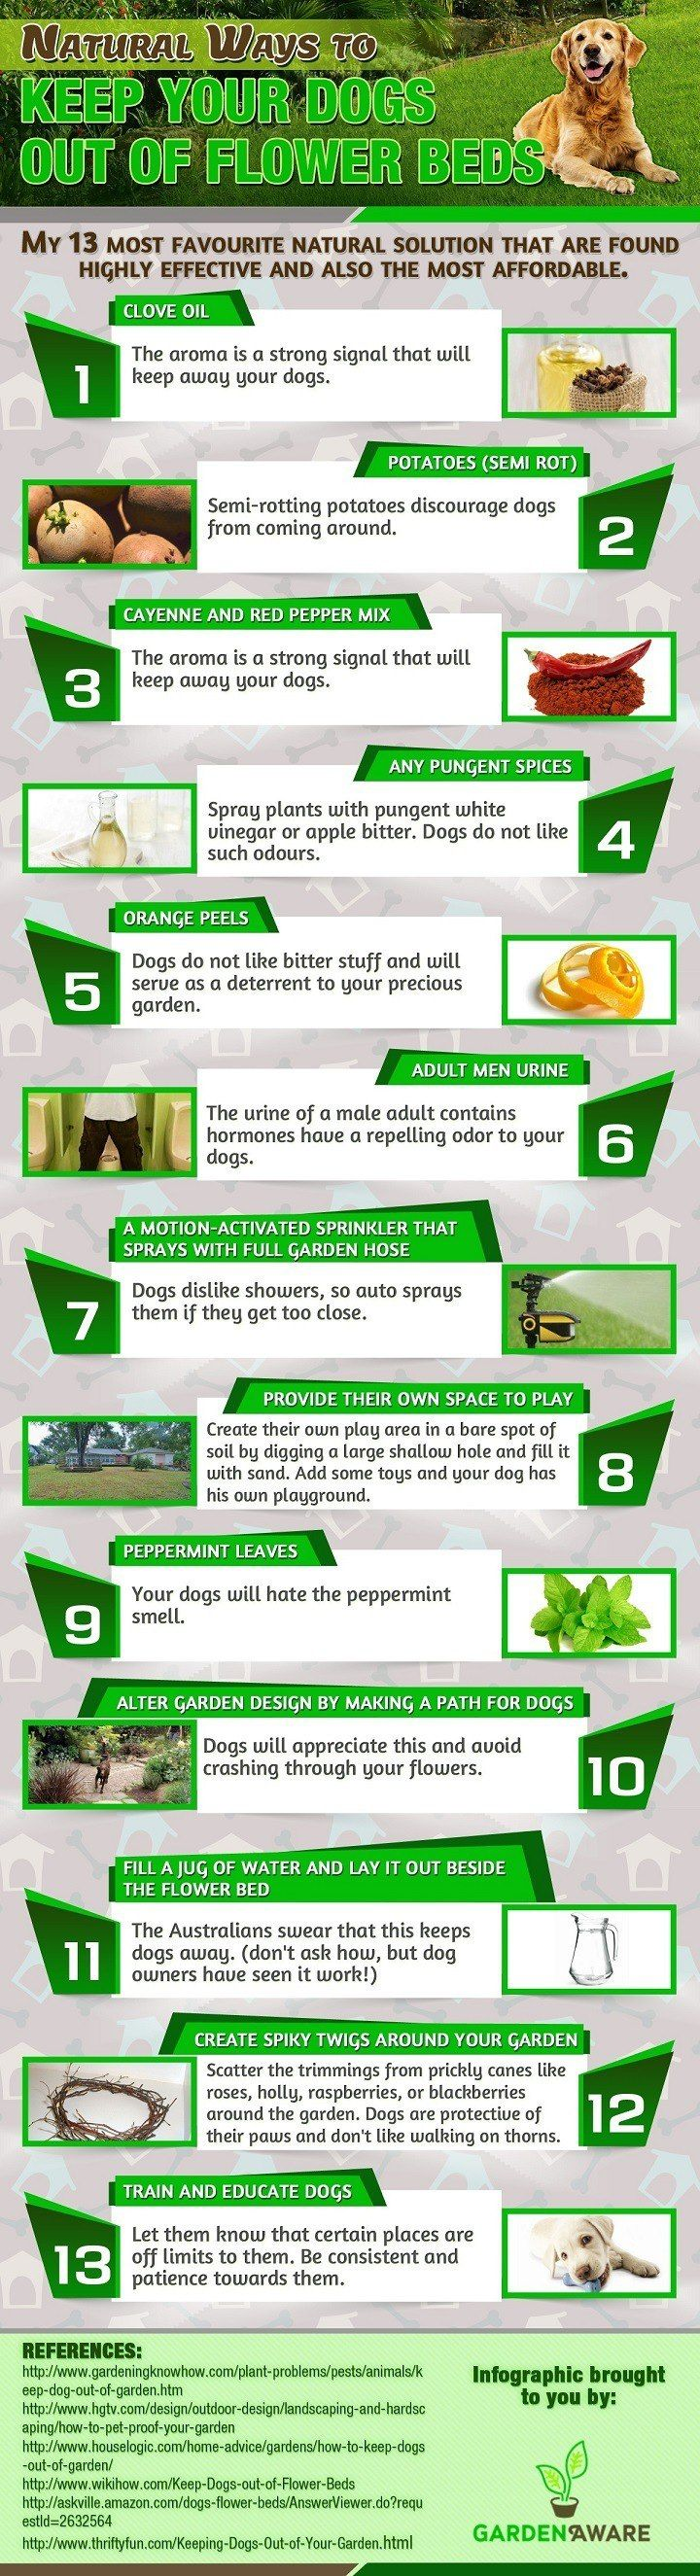 13 Natural Ways To Keep Your Dogs Out Of Flower Beds Not Sure How Many Of  These Will Work Considering My Dog Eats Oranges Loves To Go In The Shower  And Eat ...